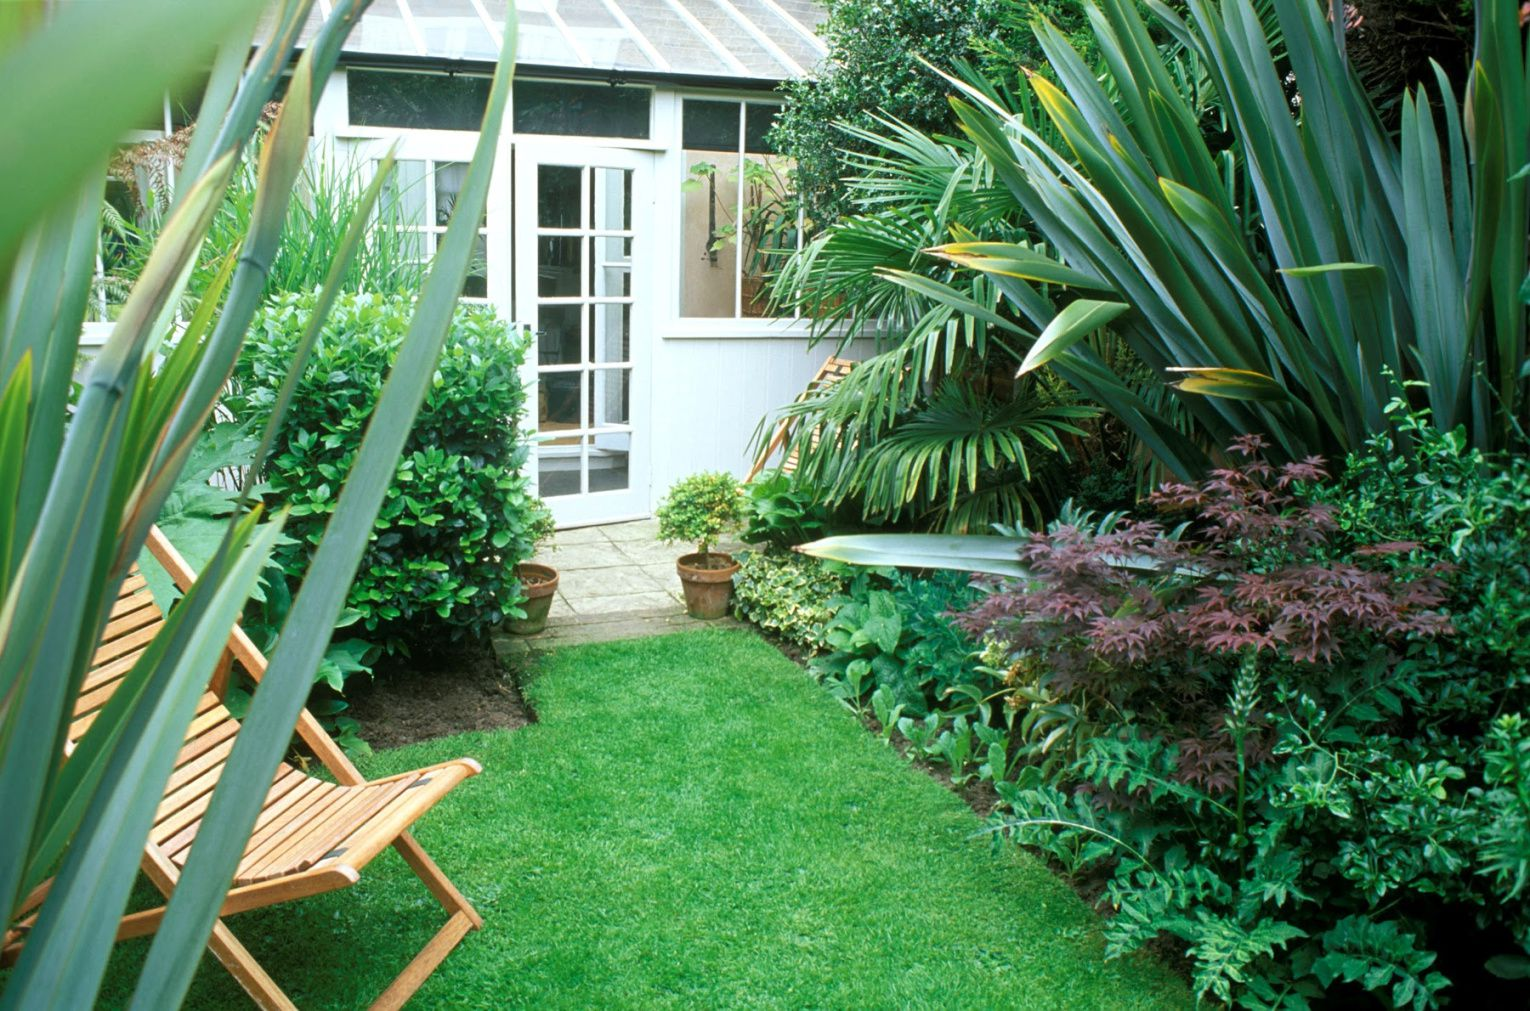 23 Landscaping Ideas for Small Backyards on Small Landscape Garden Design  id=19833